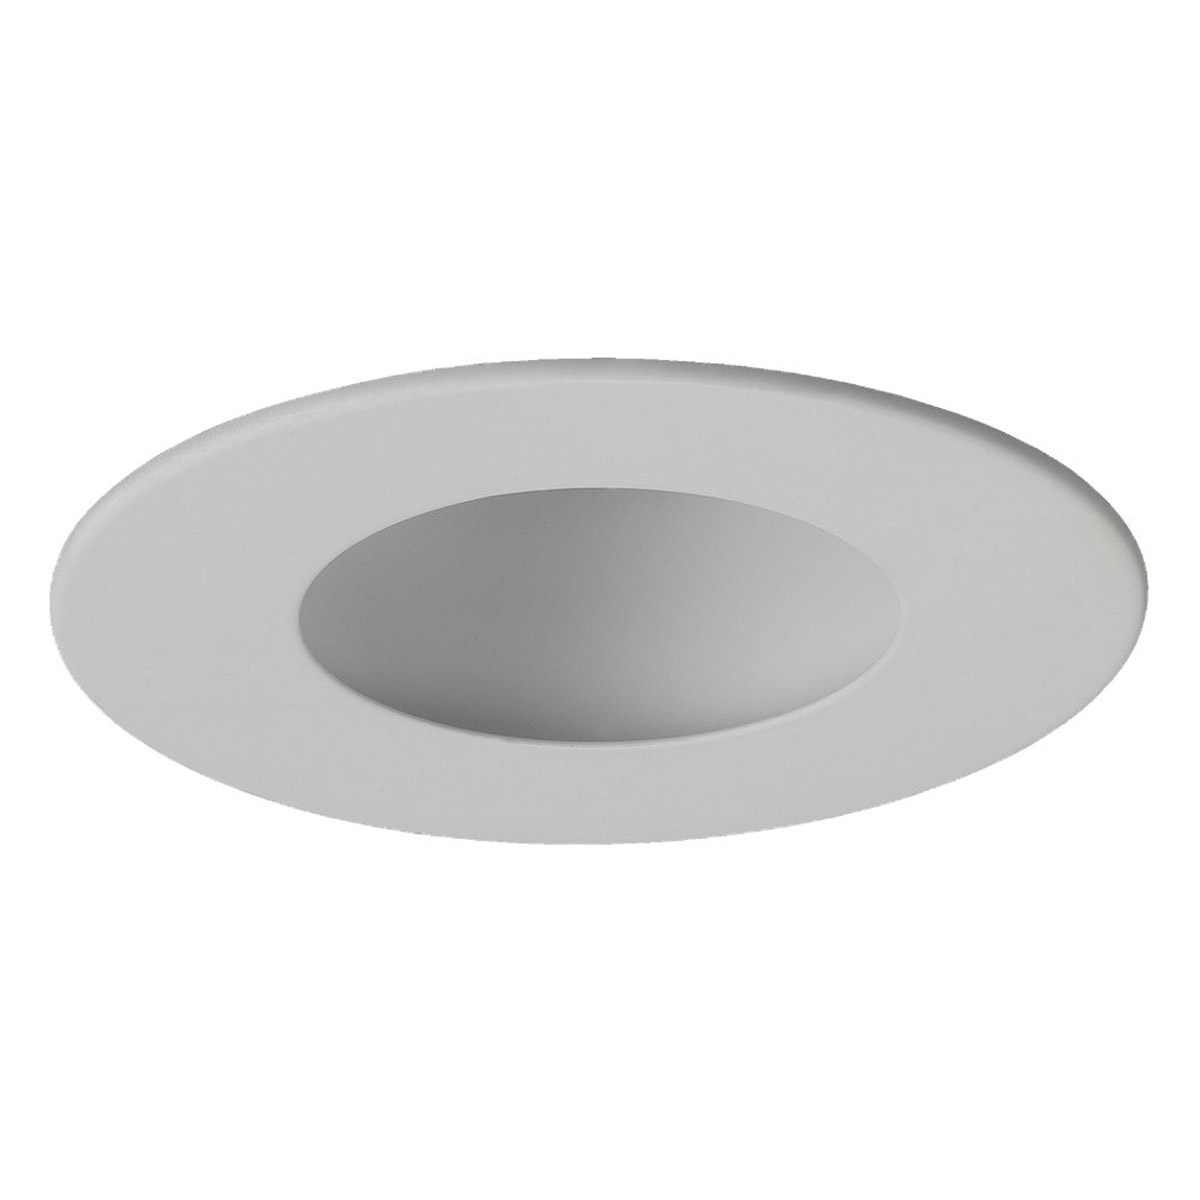 Sea Gull Lighting Signature Recessed Trim Only in White 11090AT-15